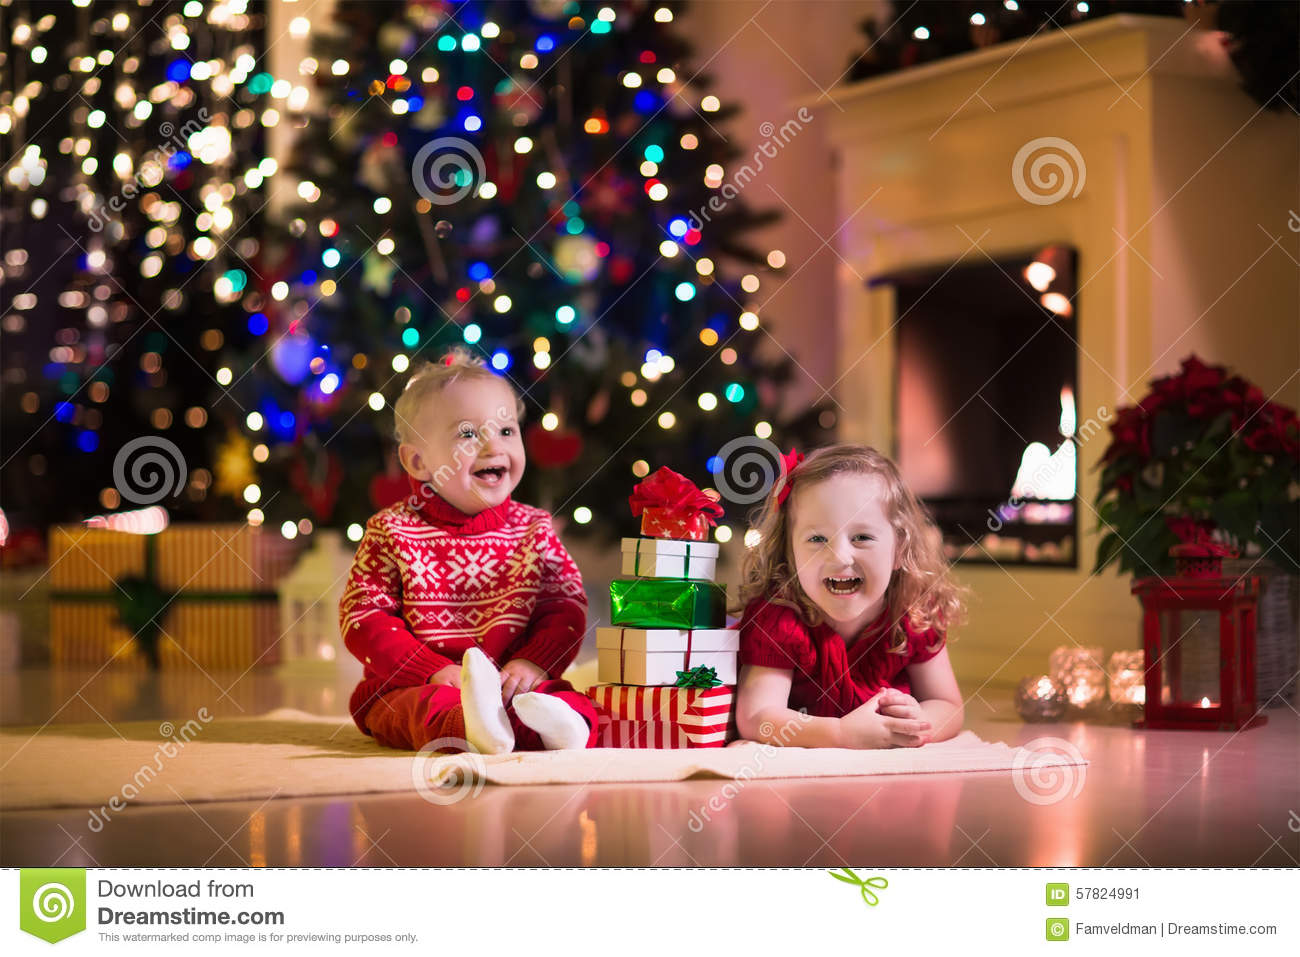 Kids Opening Christmas Presents At Fireplace Stock Image - Image of ...